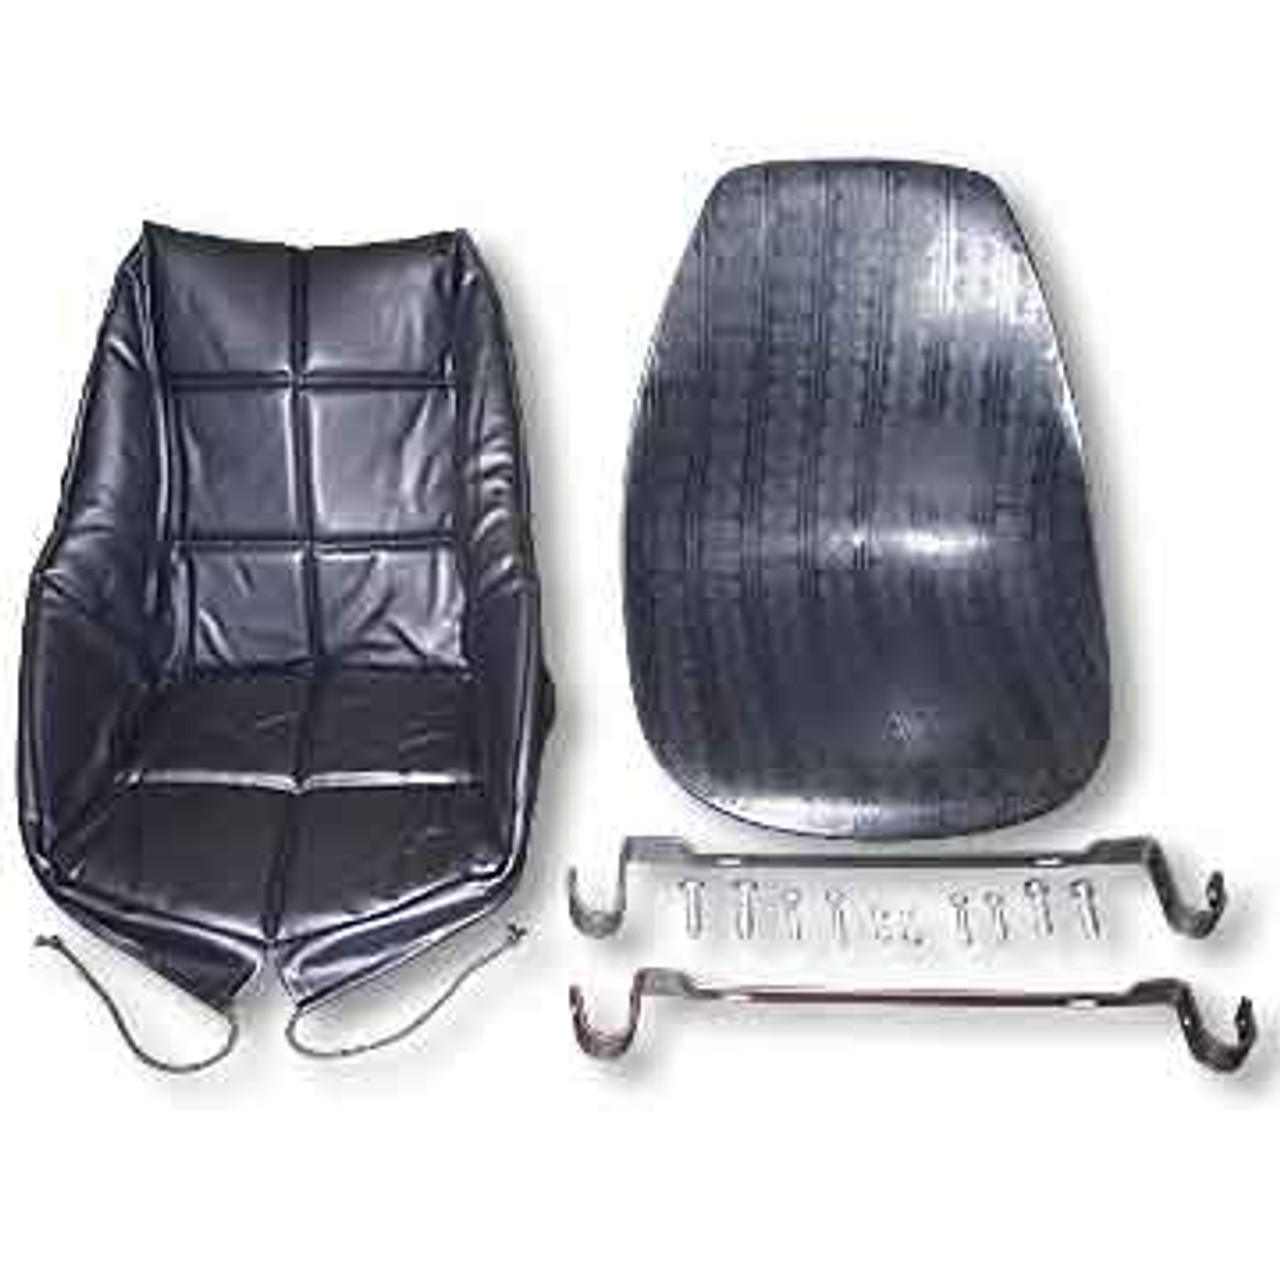 Bucket Seat Kit, Complete, With Bracket, Hardware & Seat Cover